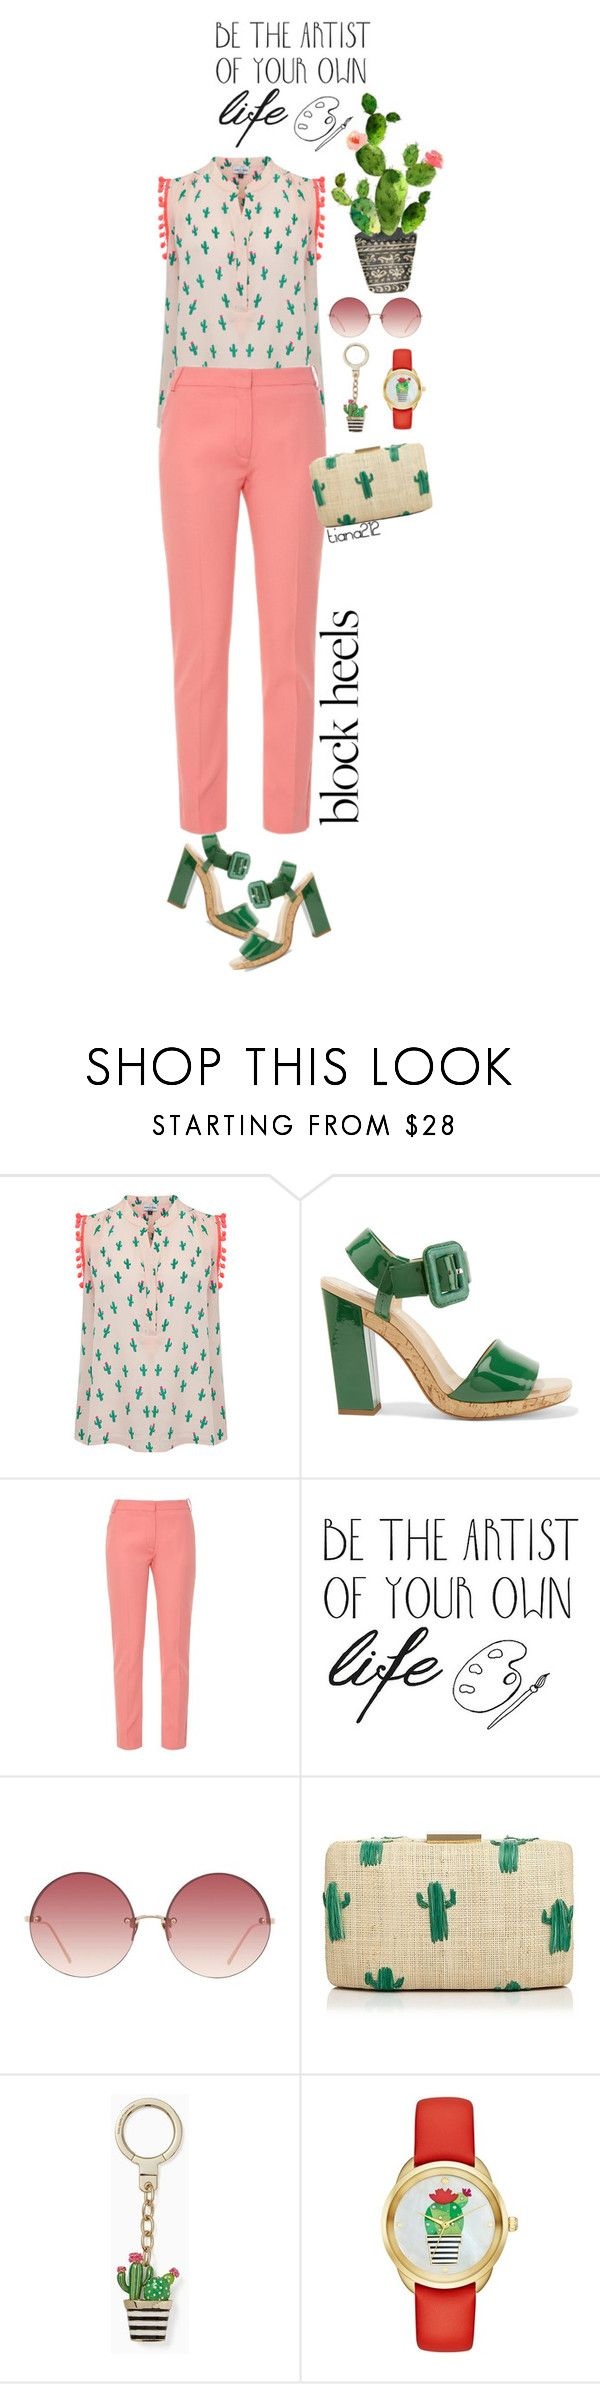 """""""Block heels"""" by tiana212 ❤ liked on Polyvore featuring Mercy Delta, Roger Vivier, Altuzarra, ADZif, Linda Farrow, Kayu and Kate Spade"""